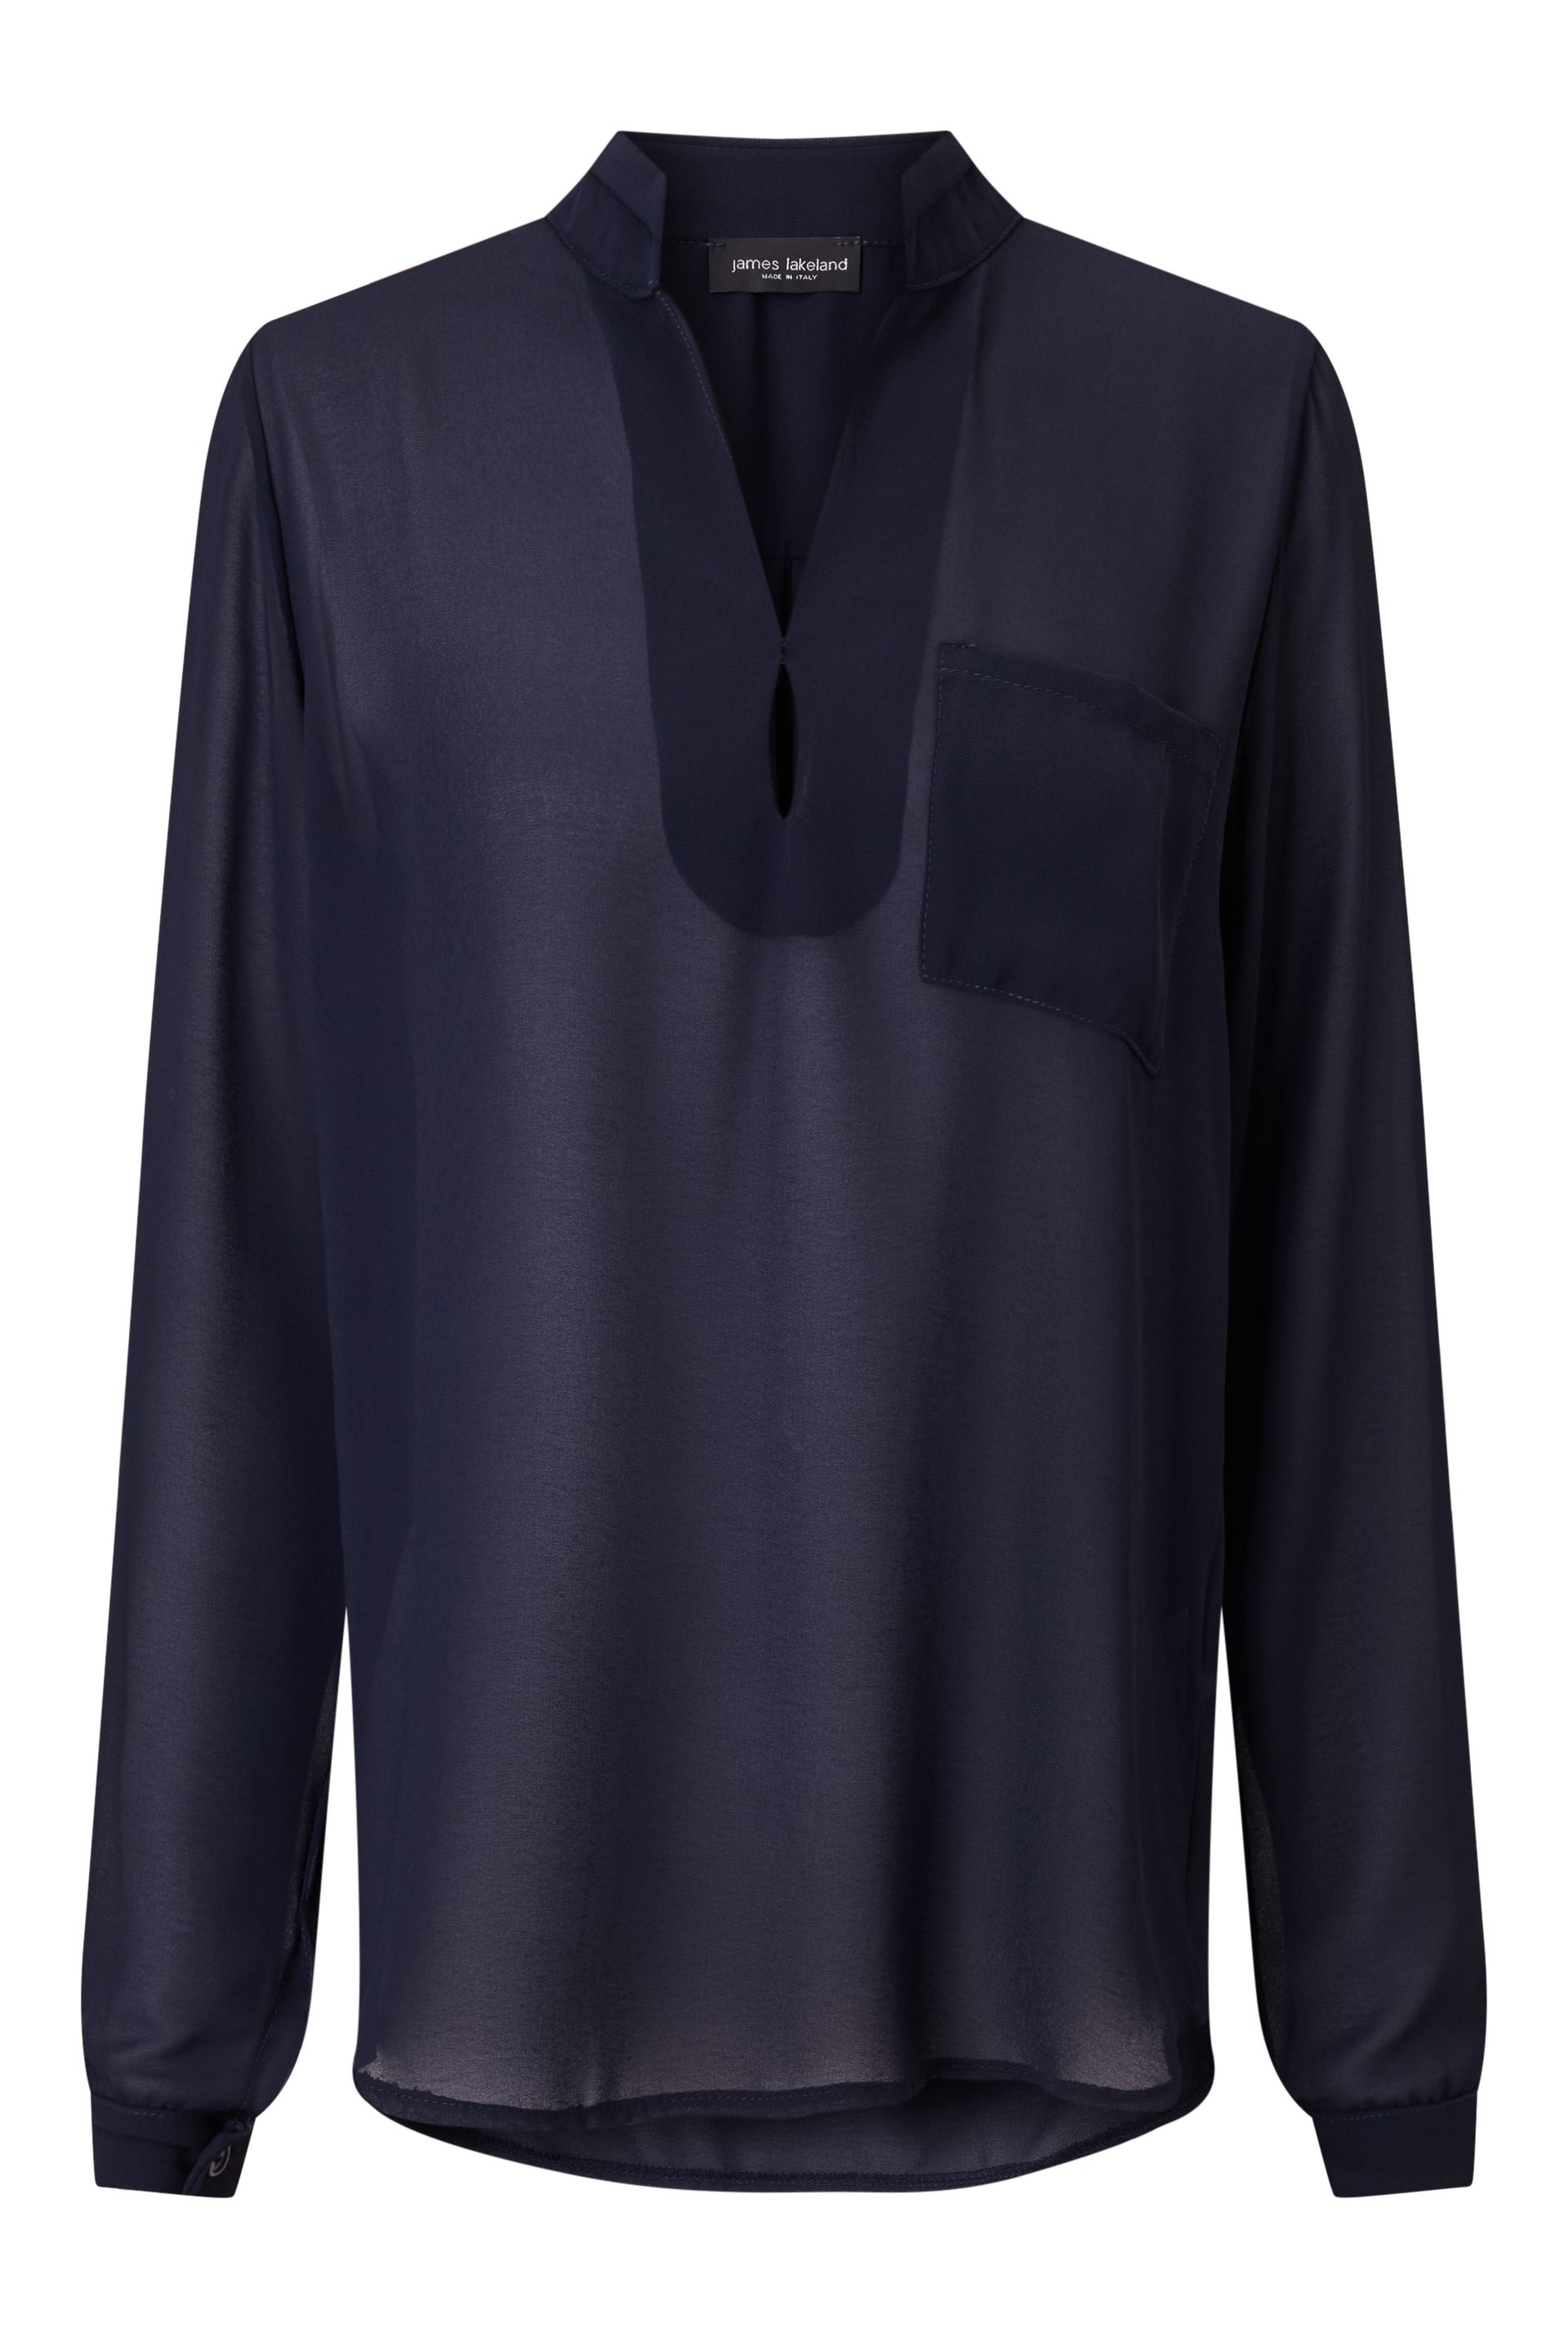 James Lakeland Long Sleeve Pockets Blouse, Blue